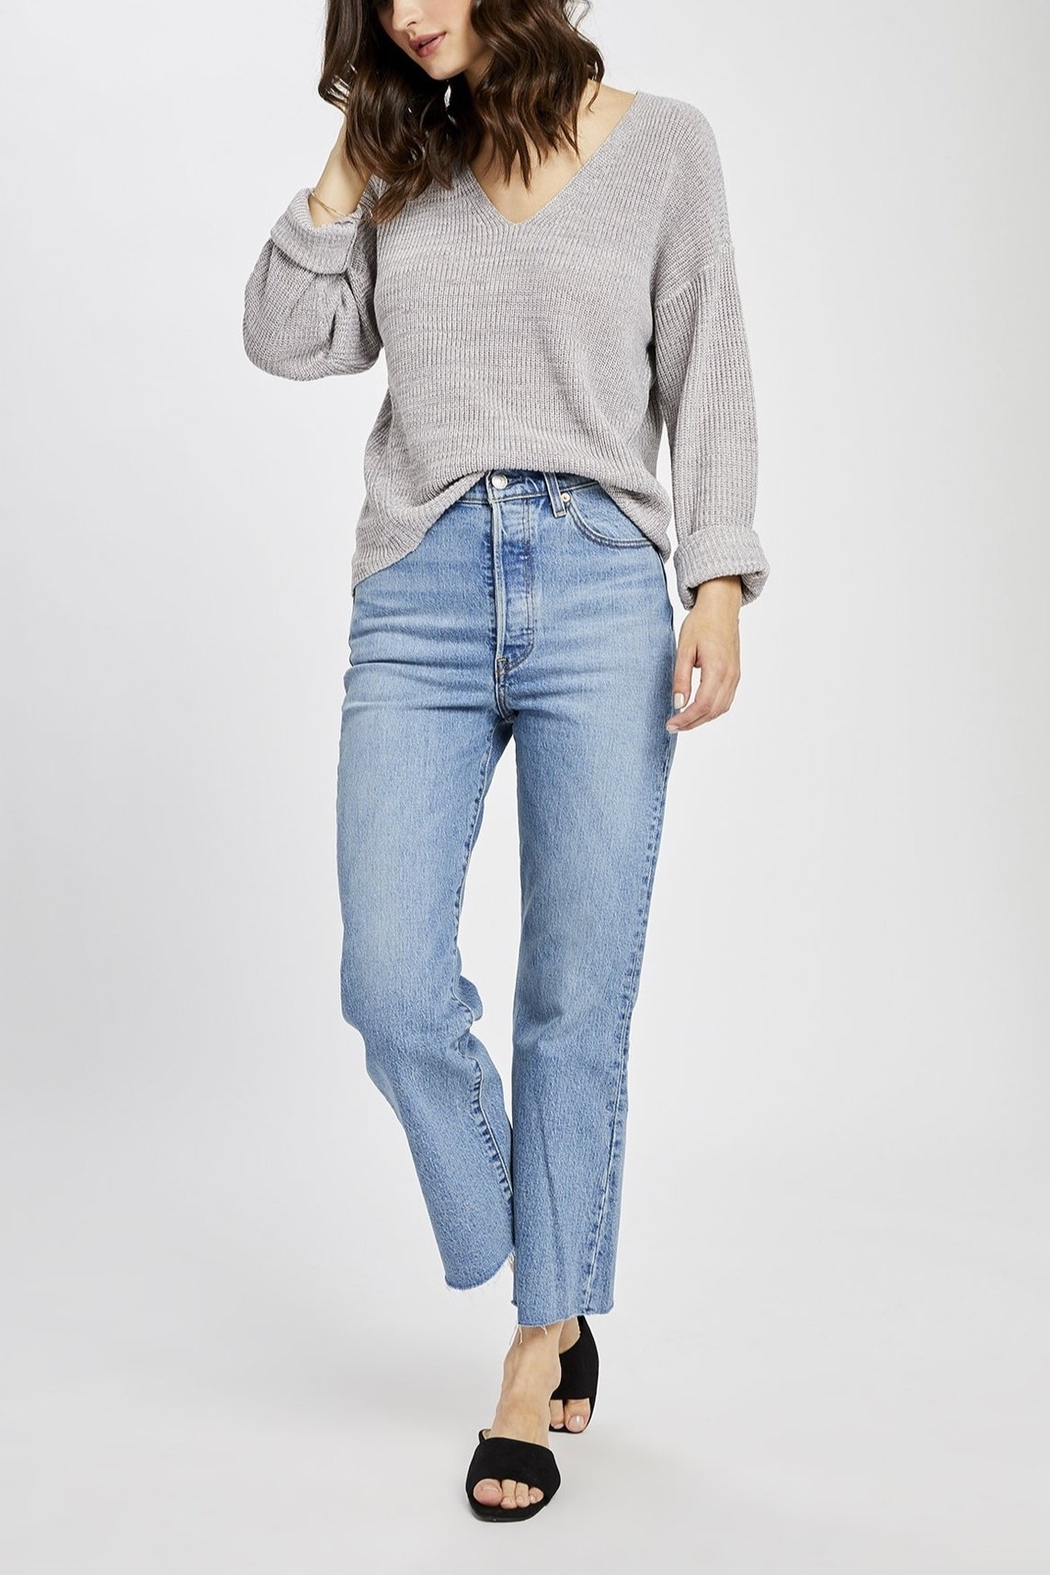 Gentle Fawn Tucker V-neck Pullover Sweater - Front Cropped Image